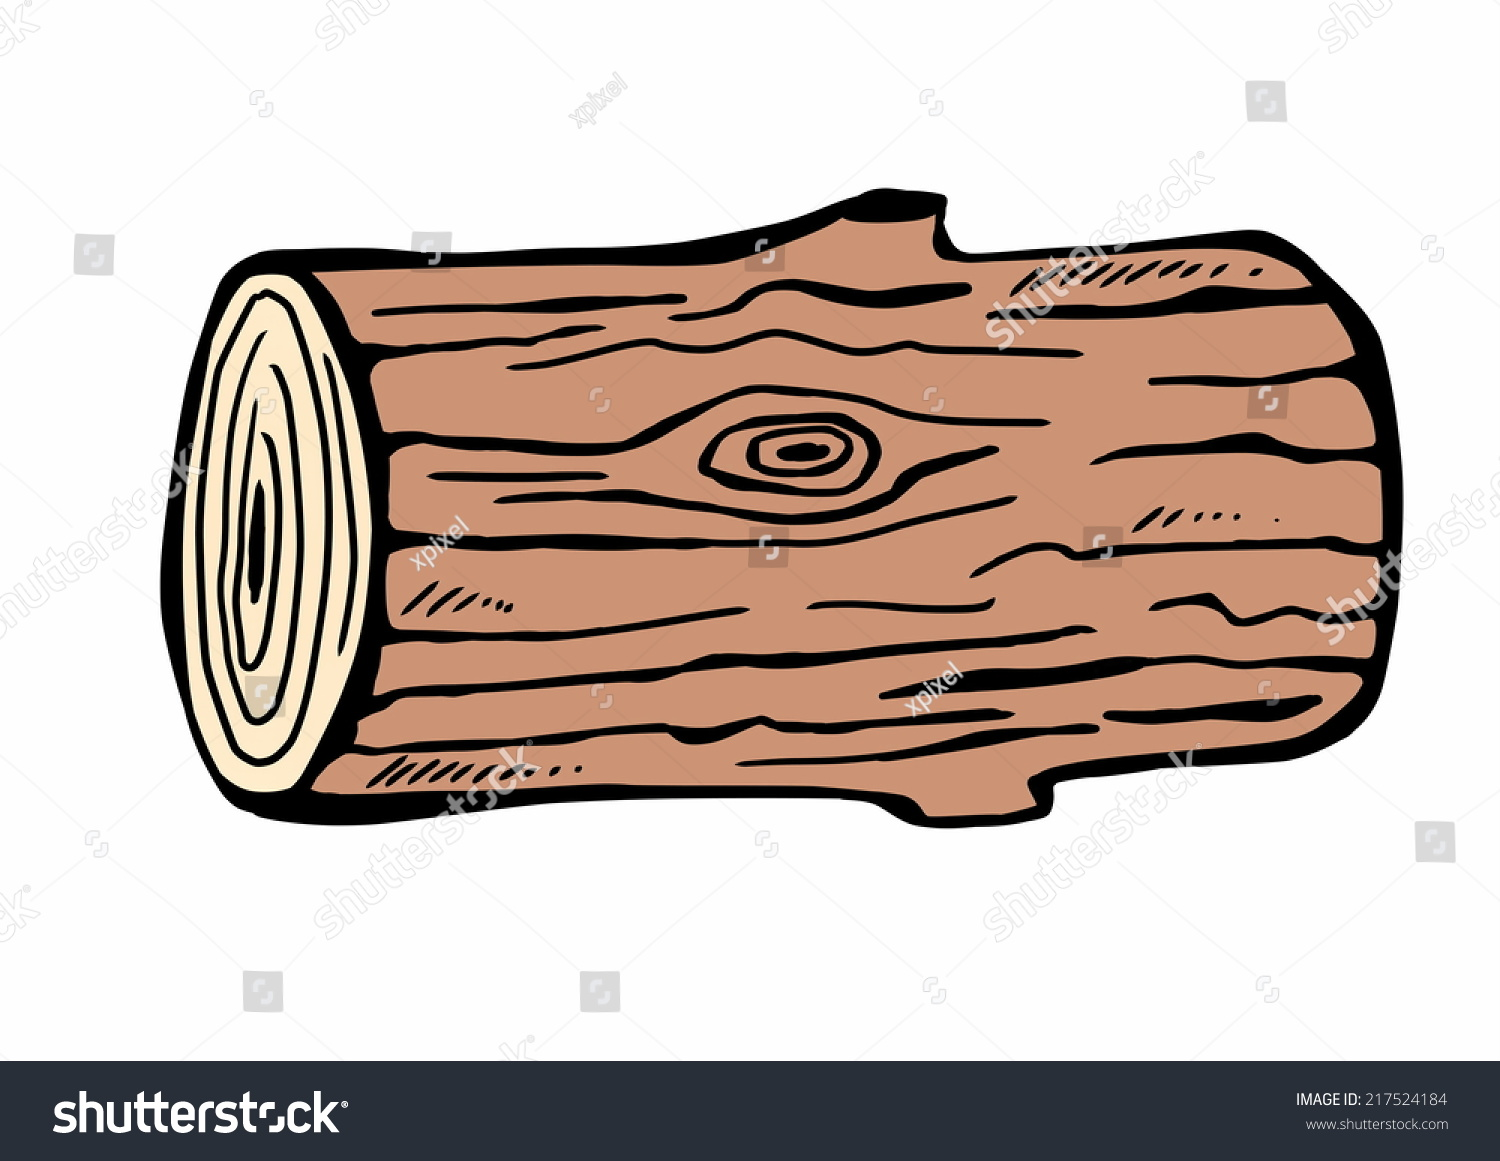 Timber Logs Clip Art ~ Hand drawn wood logs stock illustration